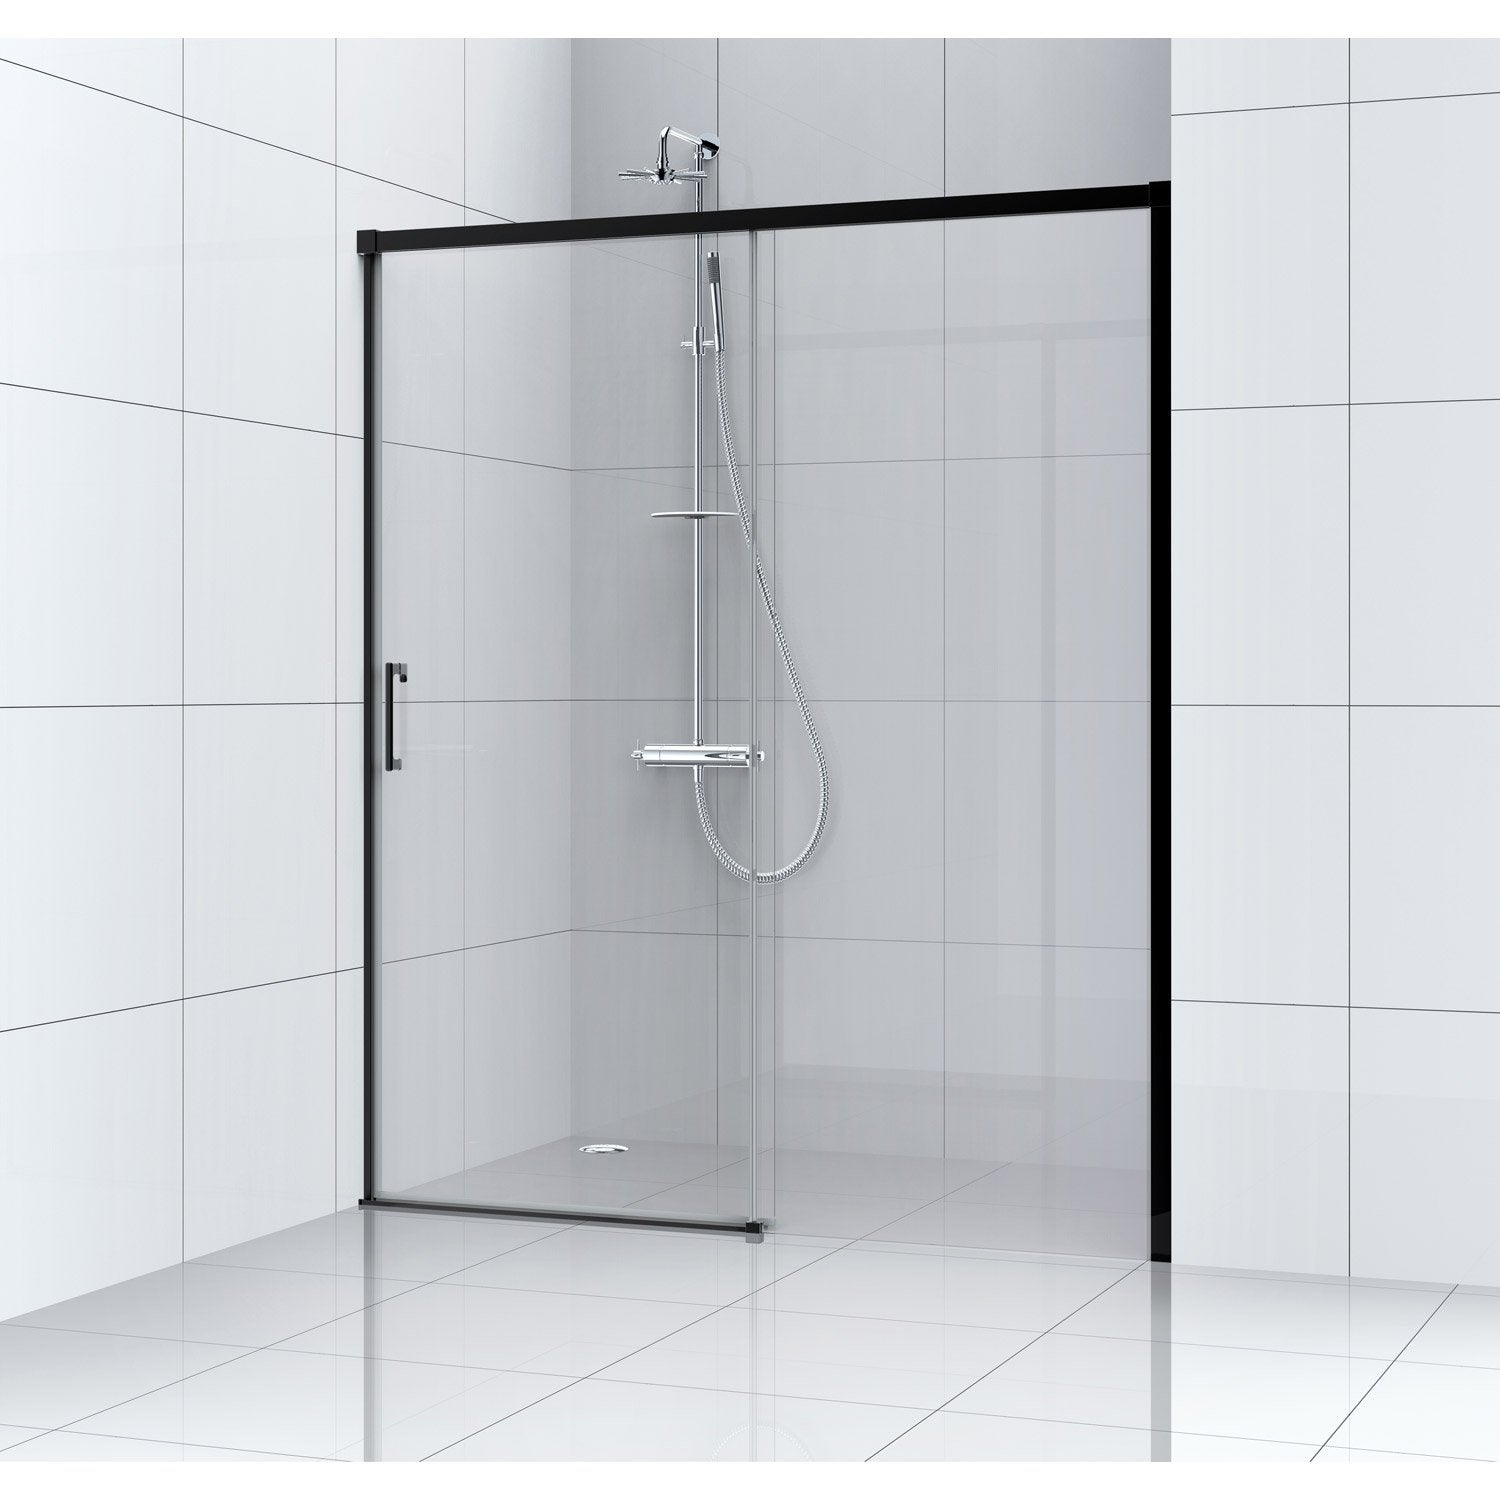 Porte de douche coulissante l 100 cm verre transparent for Porte extensible leroy merlin